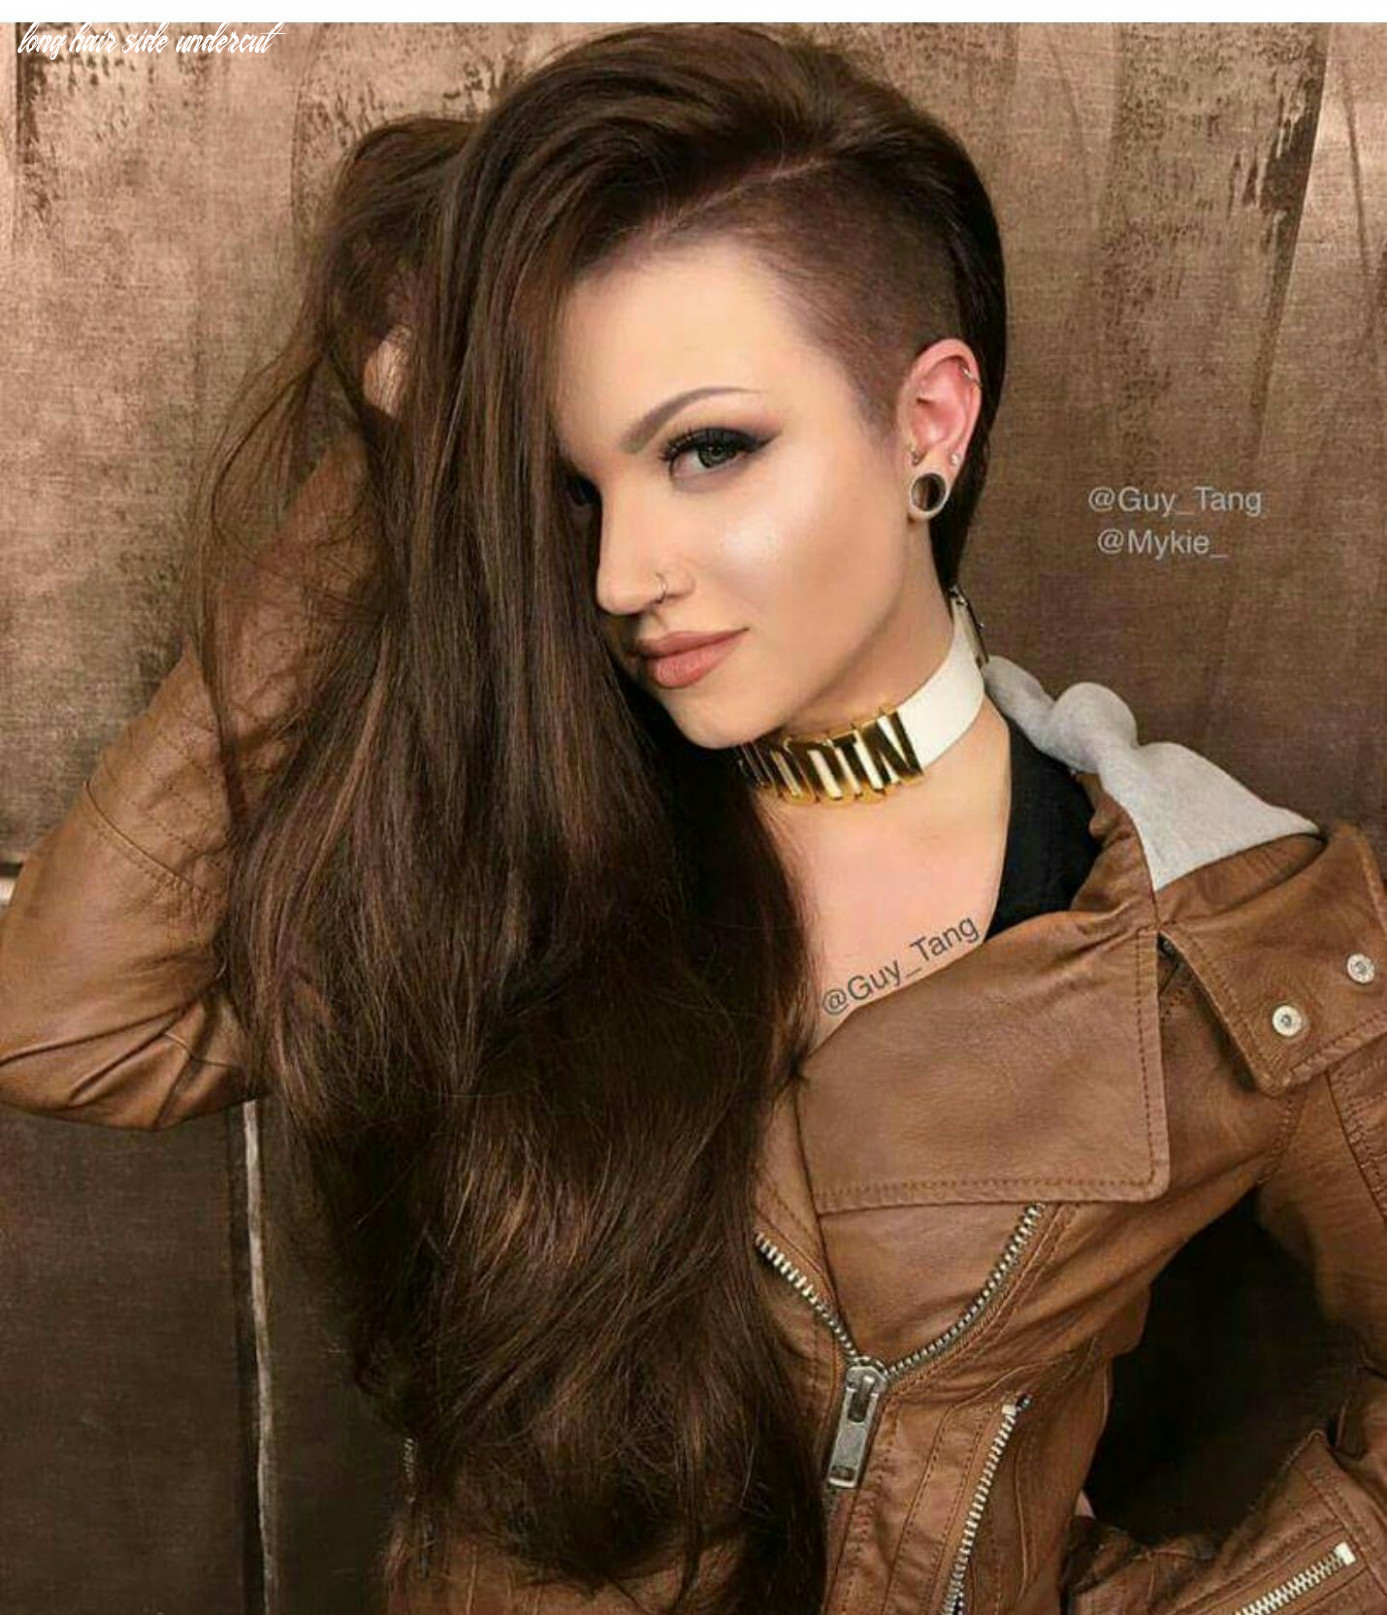 Mykie Glam and Gore Guy Tang Brown side shave hair hairstyle (With ...